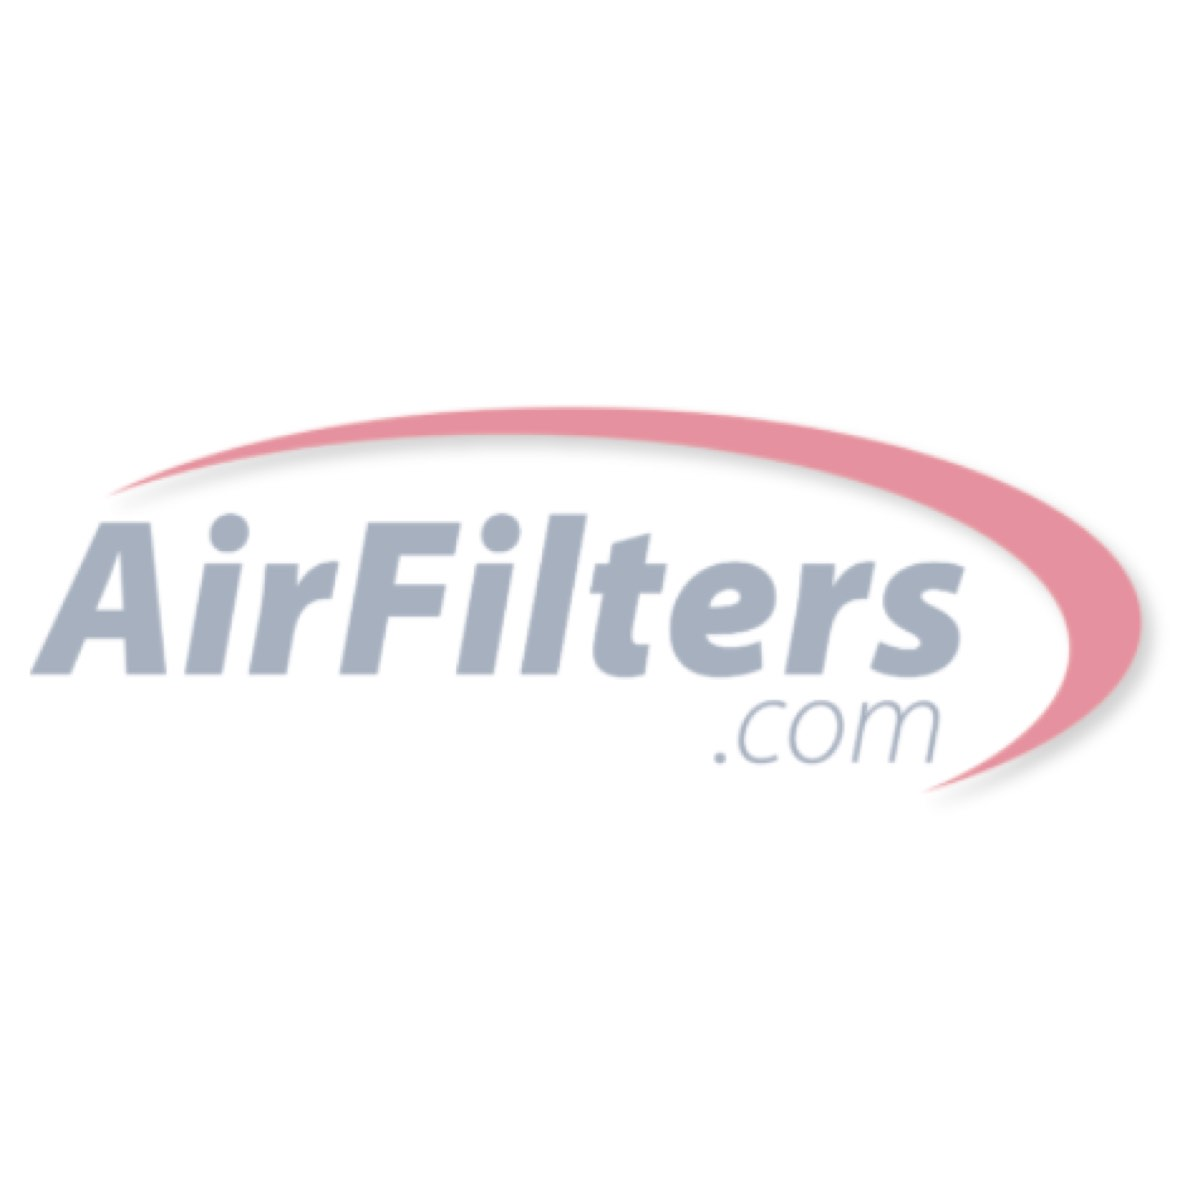 3M Filtrete Elite Allergen Air Filters - 2200 MPR